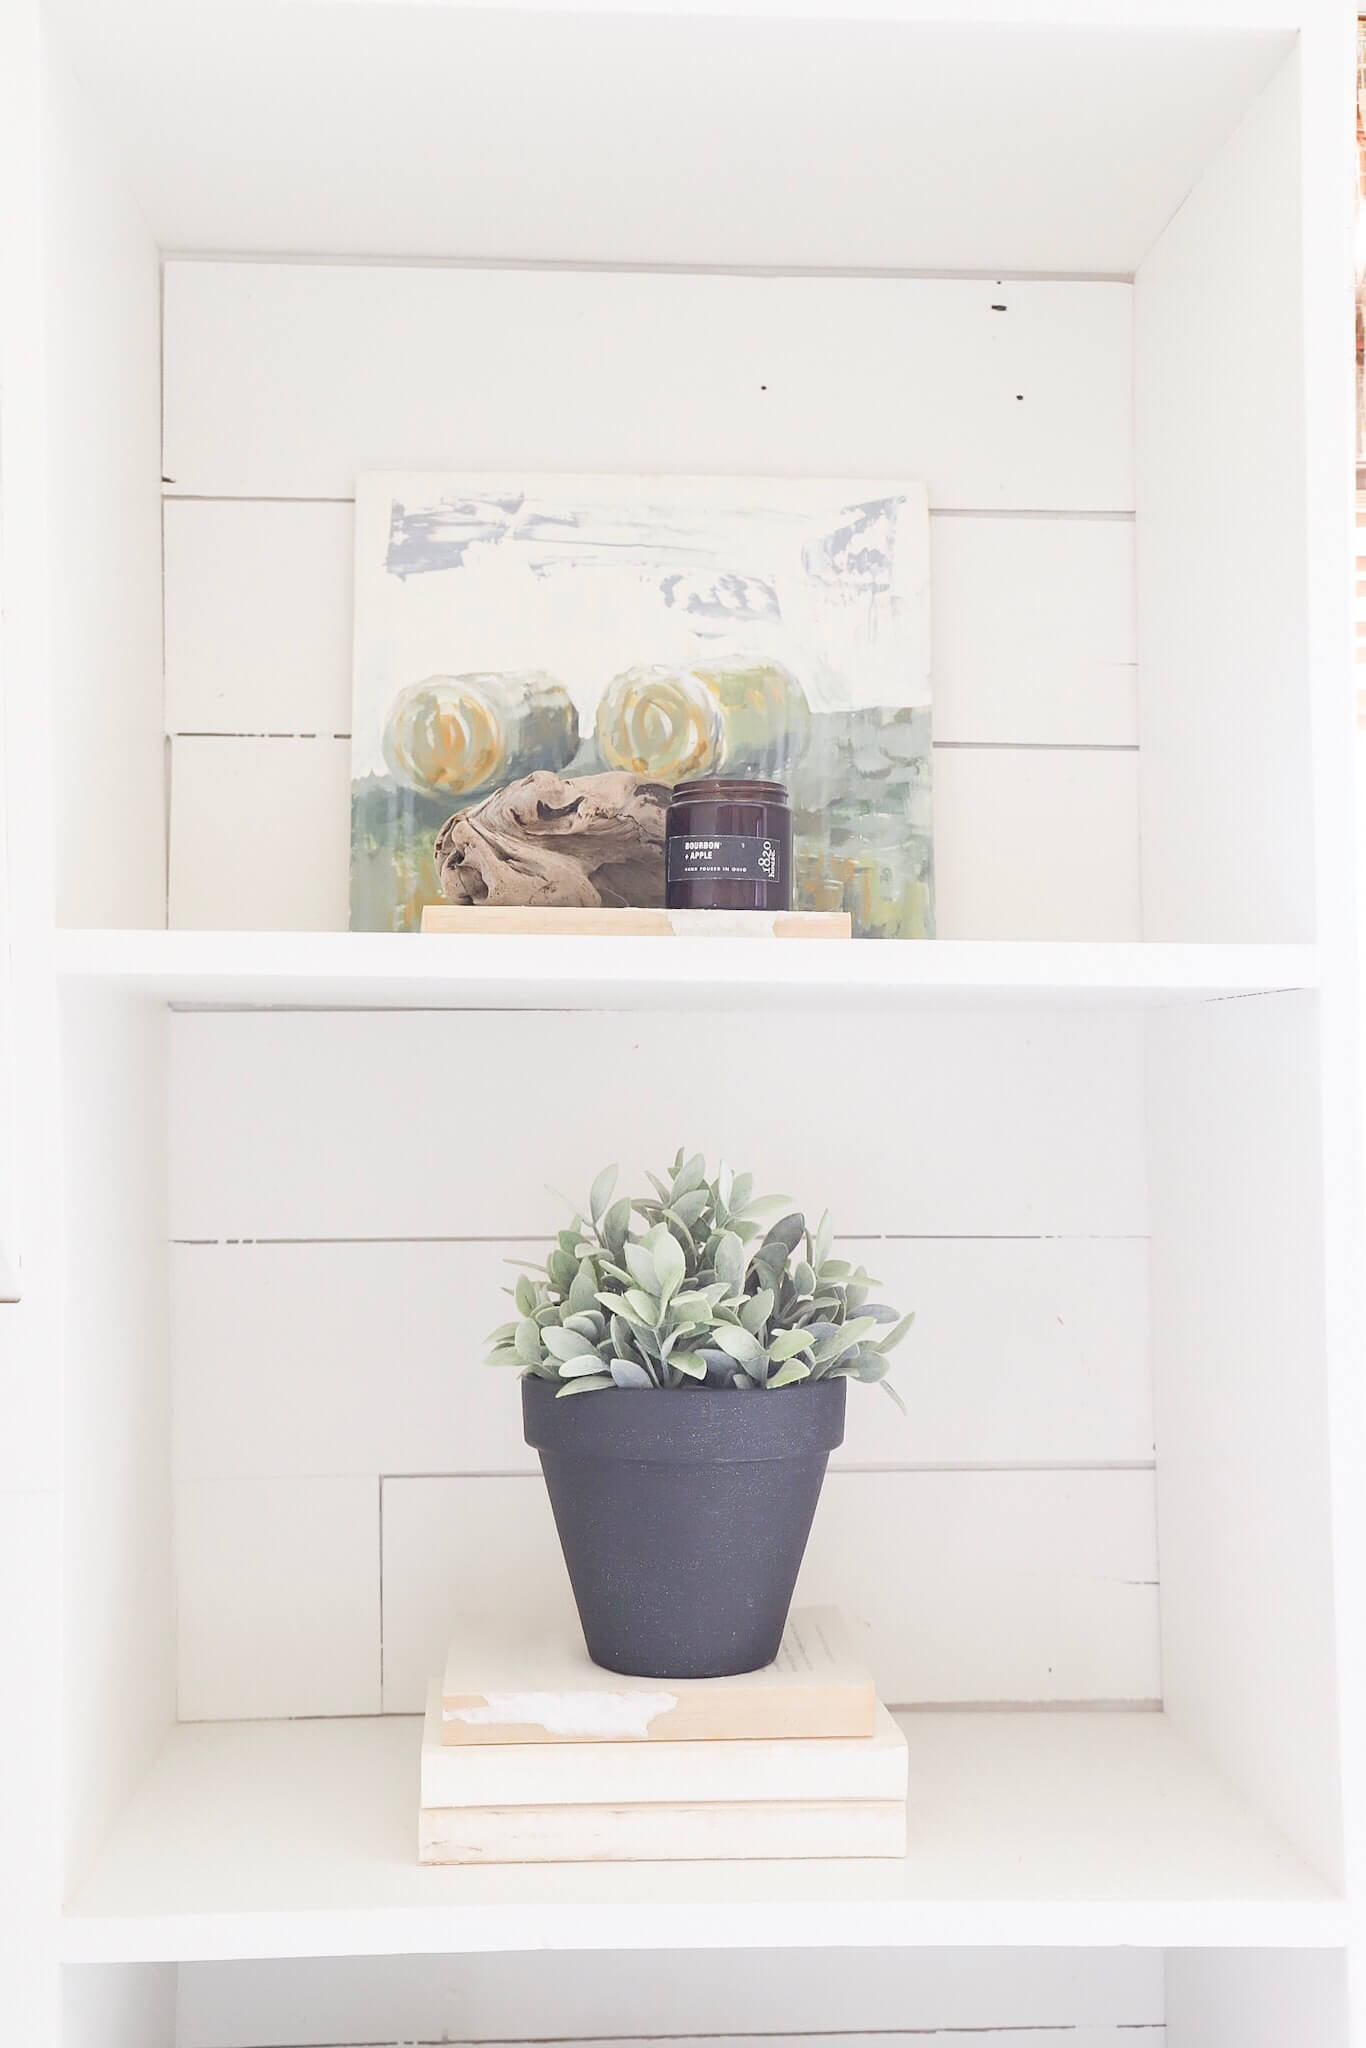 I used home made chalk paint on this terra cotta pot and totally transformed it! Have you made your own chalk paint before?